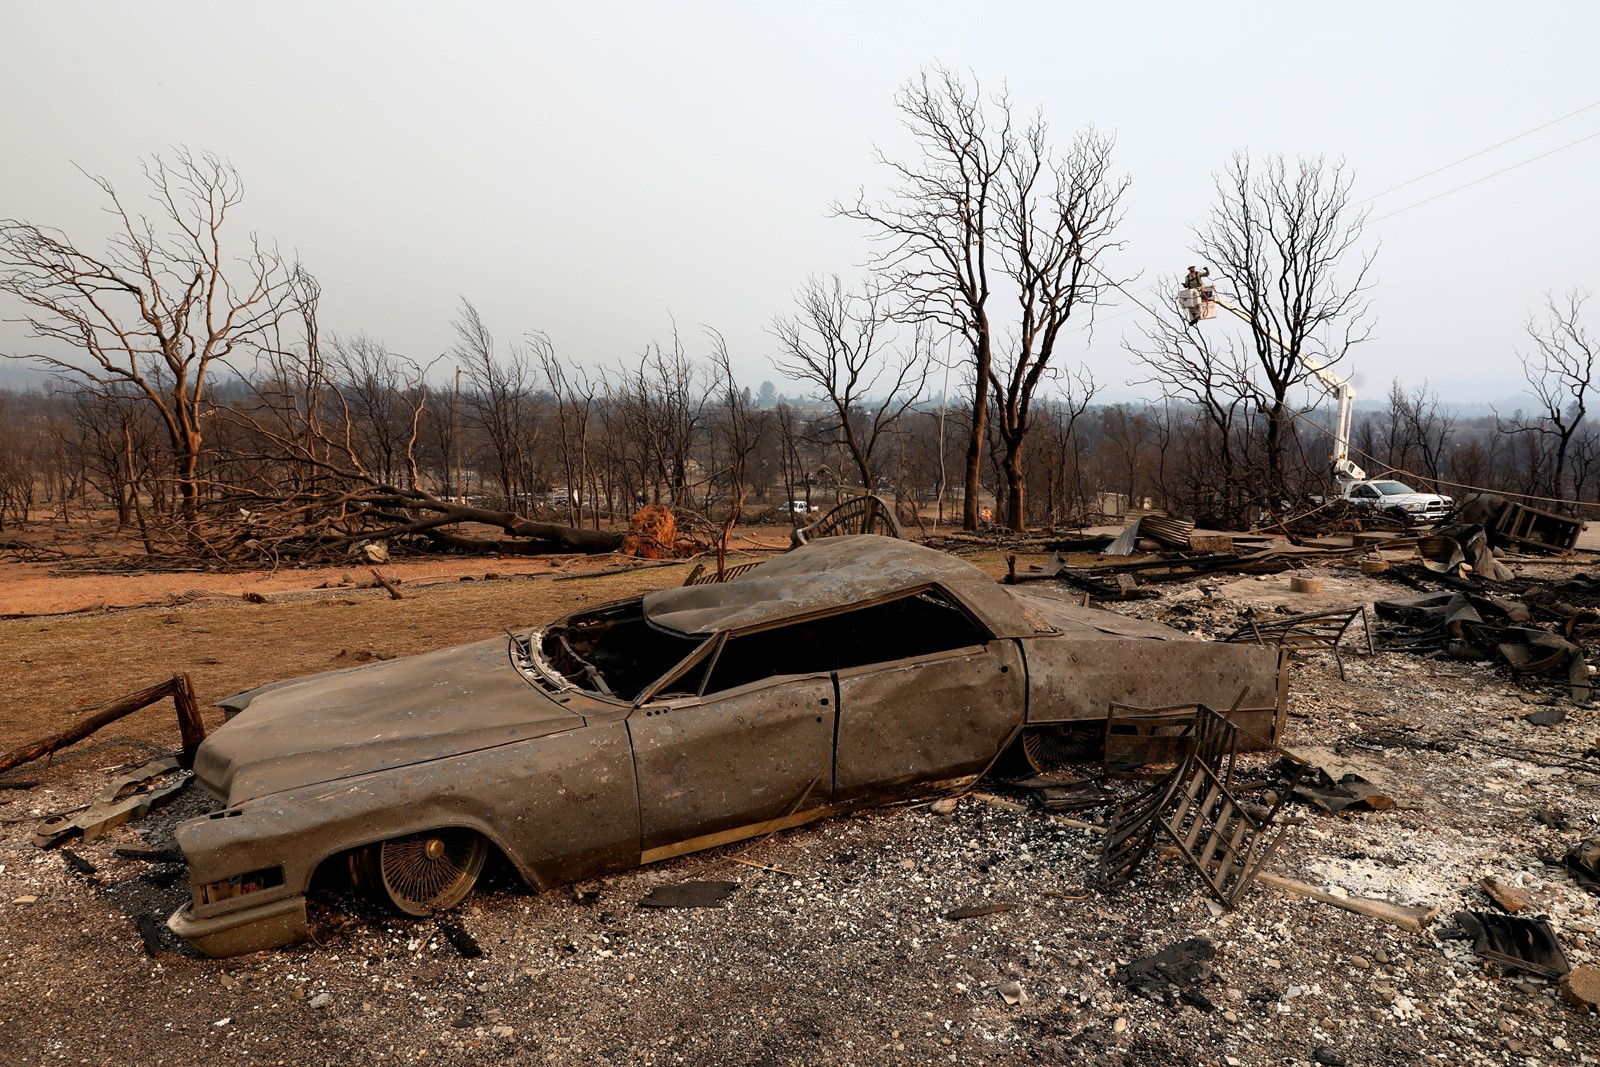 Record-setting temperatures have contributed to destructive wildfires across California. Above, a Redding home and vehicle destroyed by the Carr fire. — Photograph: Gary Coronado/Los Angeles Times.